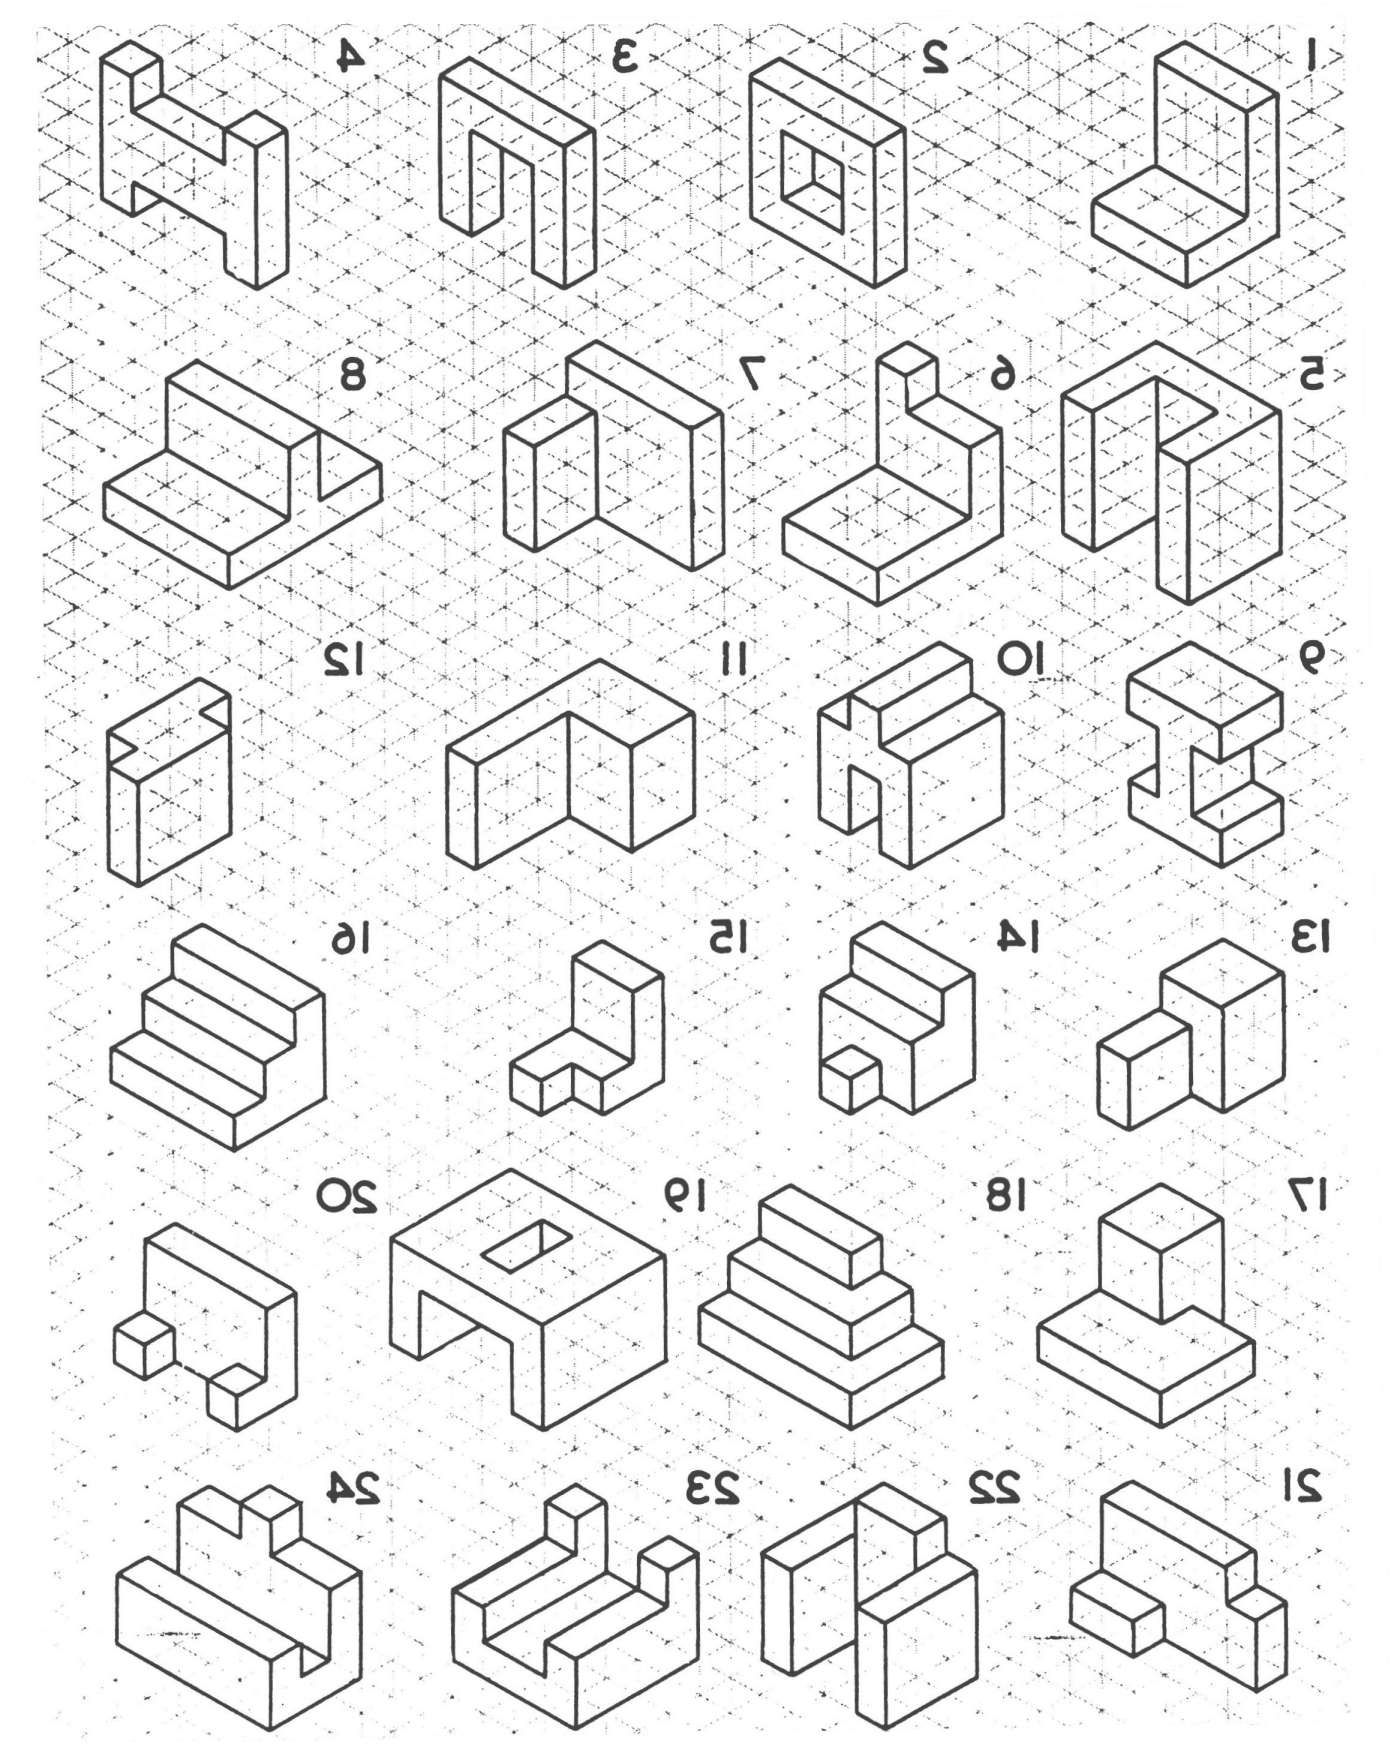 small resolution of Isometric Drawings Worksheets   Printable Worksheets and Activities for  Teachers